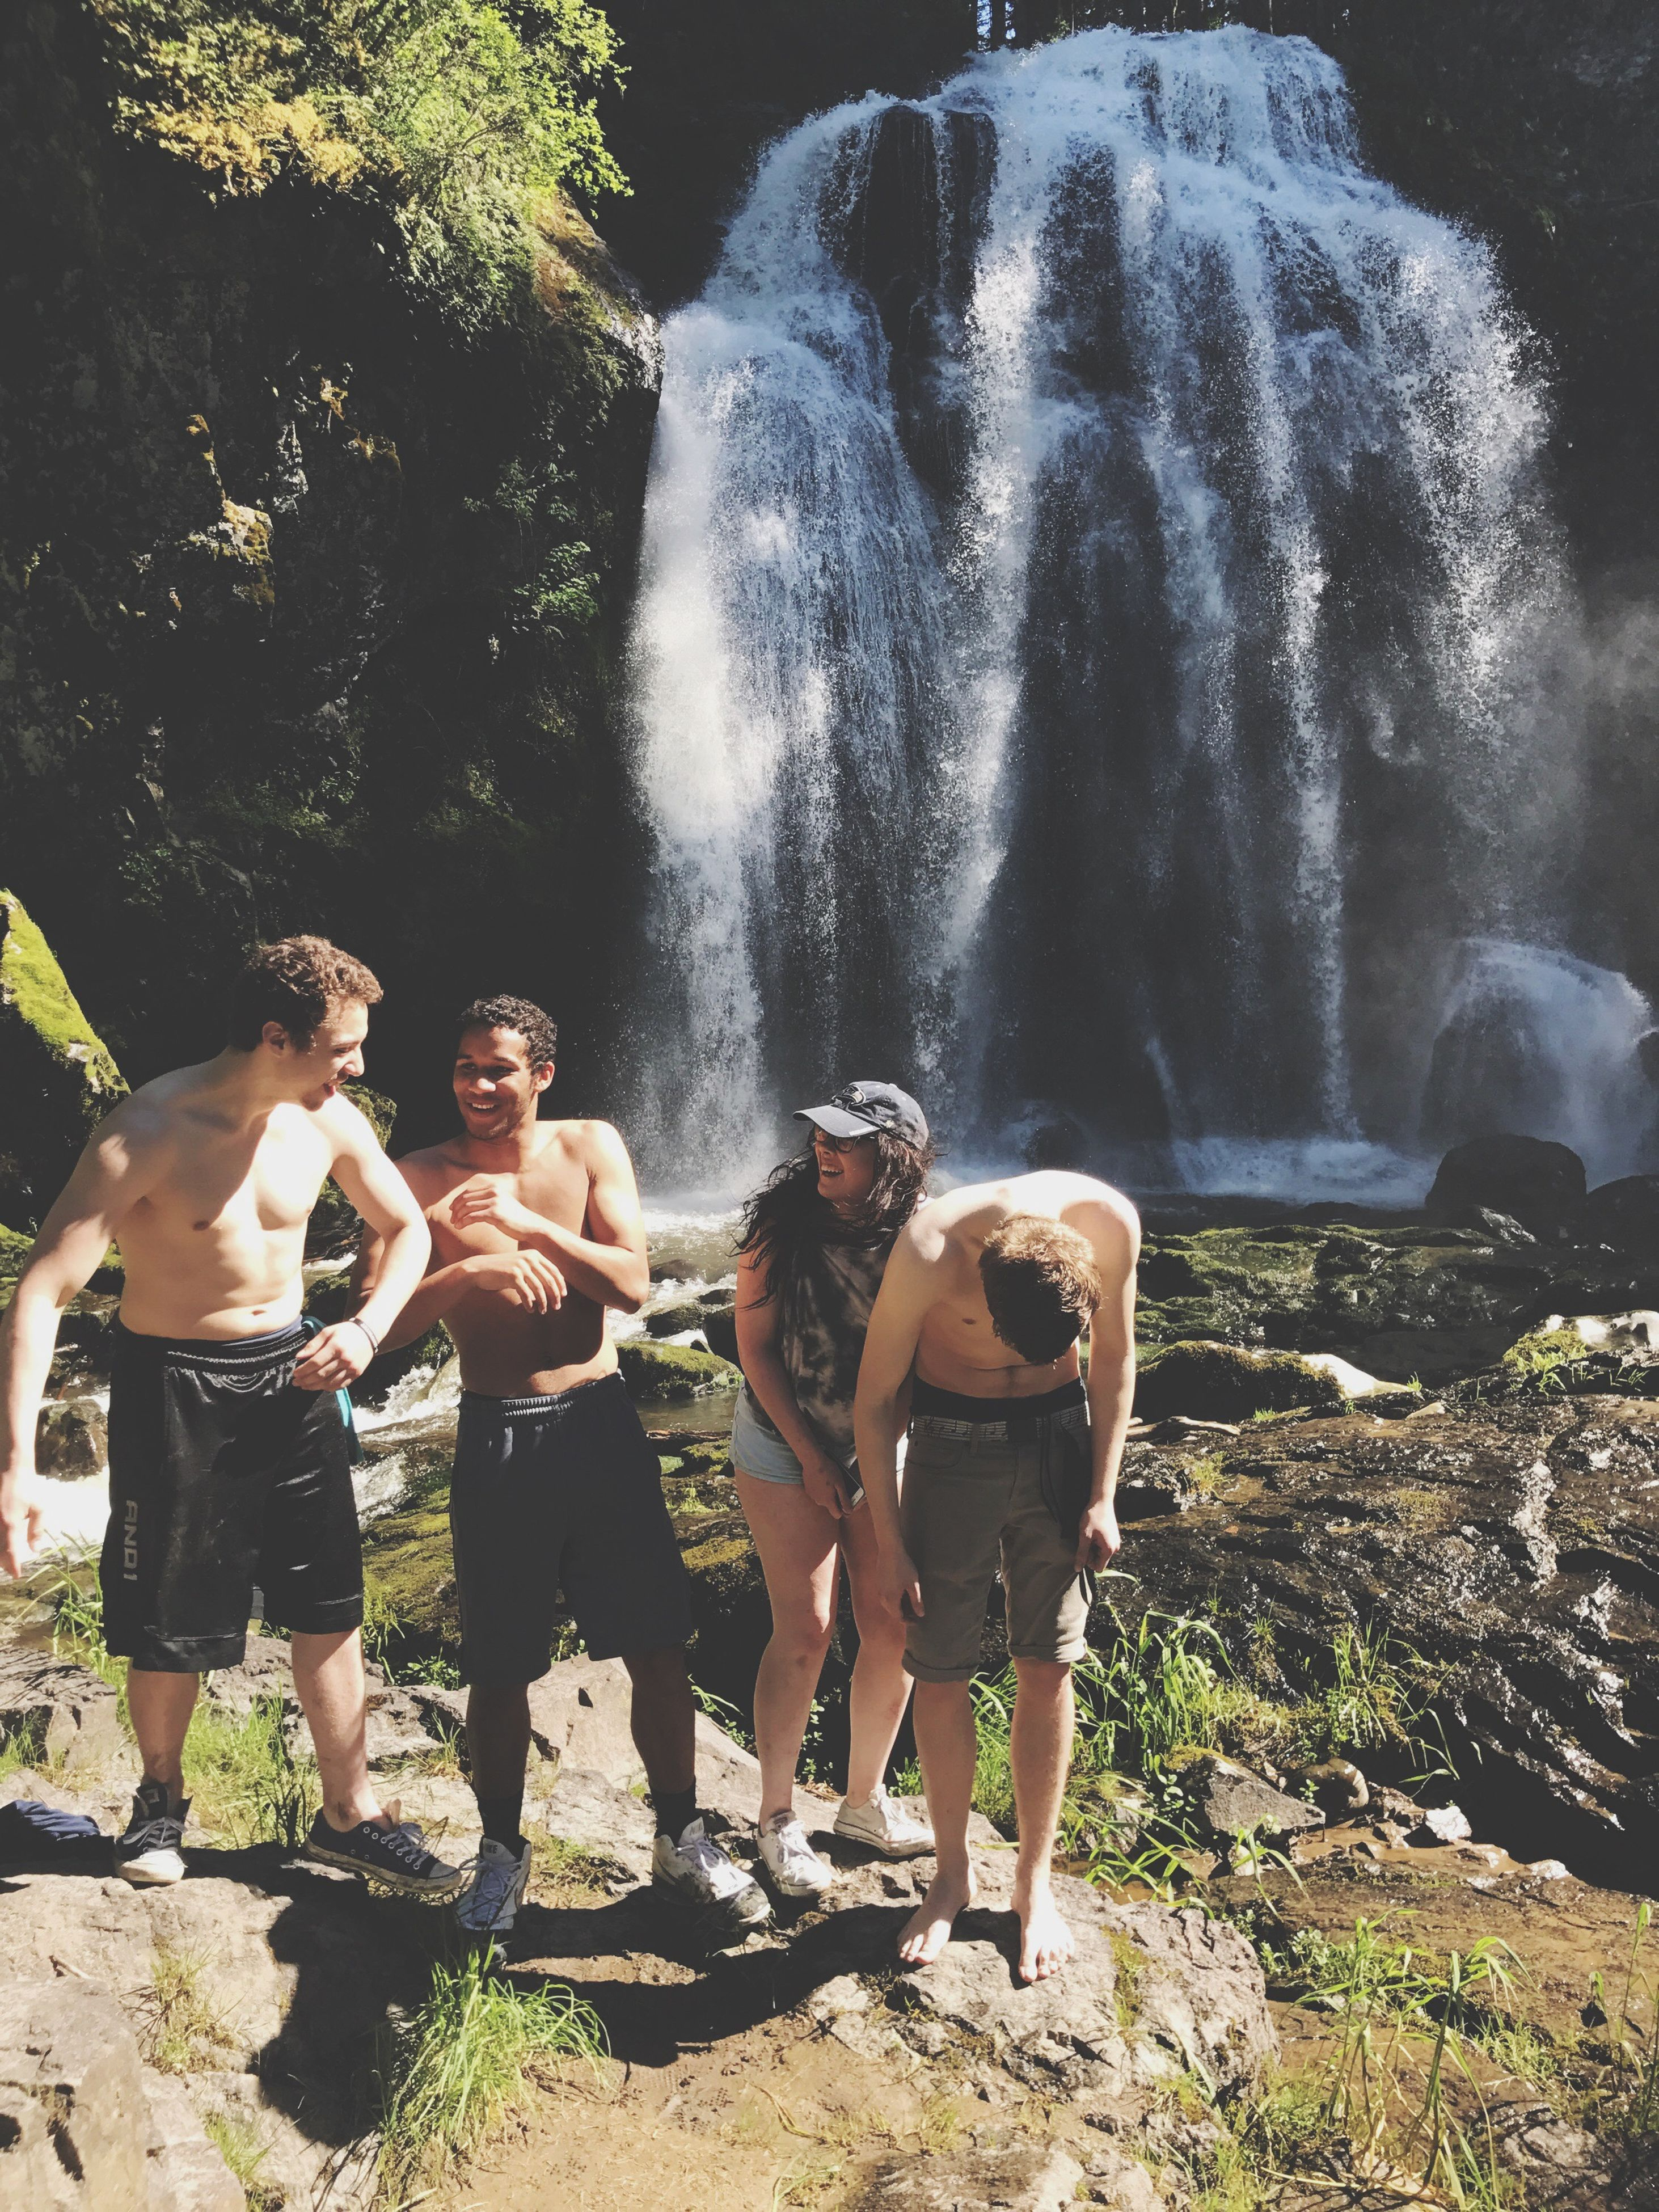 waterfall, motion, standing, water, long exposure, shirtless, rock - object, leisure activity, outdoors, nature, adventure, togetherness, vacations, real people, full length, fun, men, day, beauty in nature, lifestyles, tree, happiness, young adult, forest, friendship, boys, young women, spraying, hot spring, sky, people